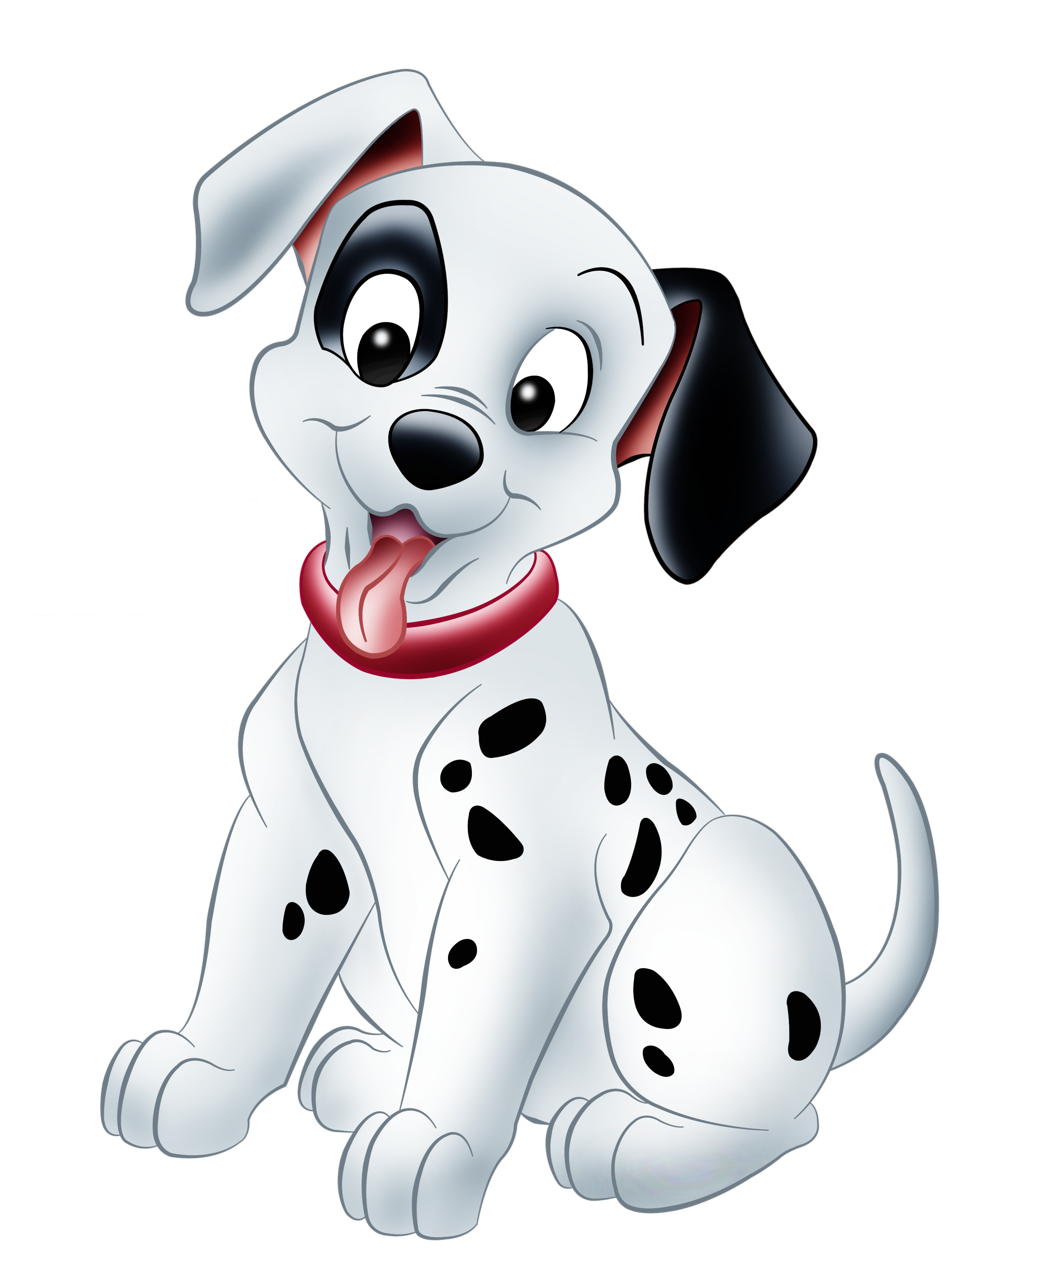 Dalmatian clipart puppy dog tail. Dalmatians png picture cartoon